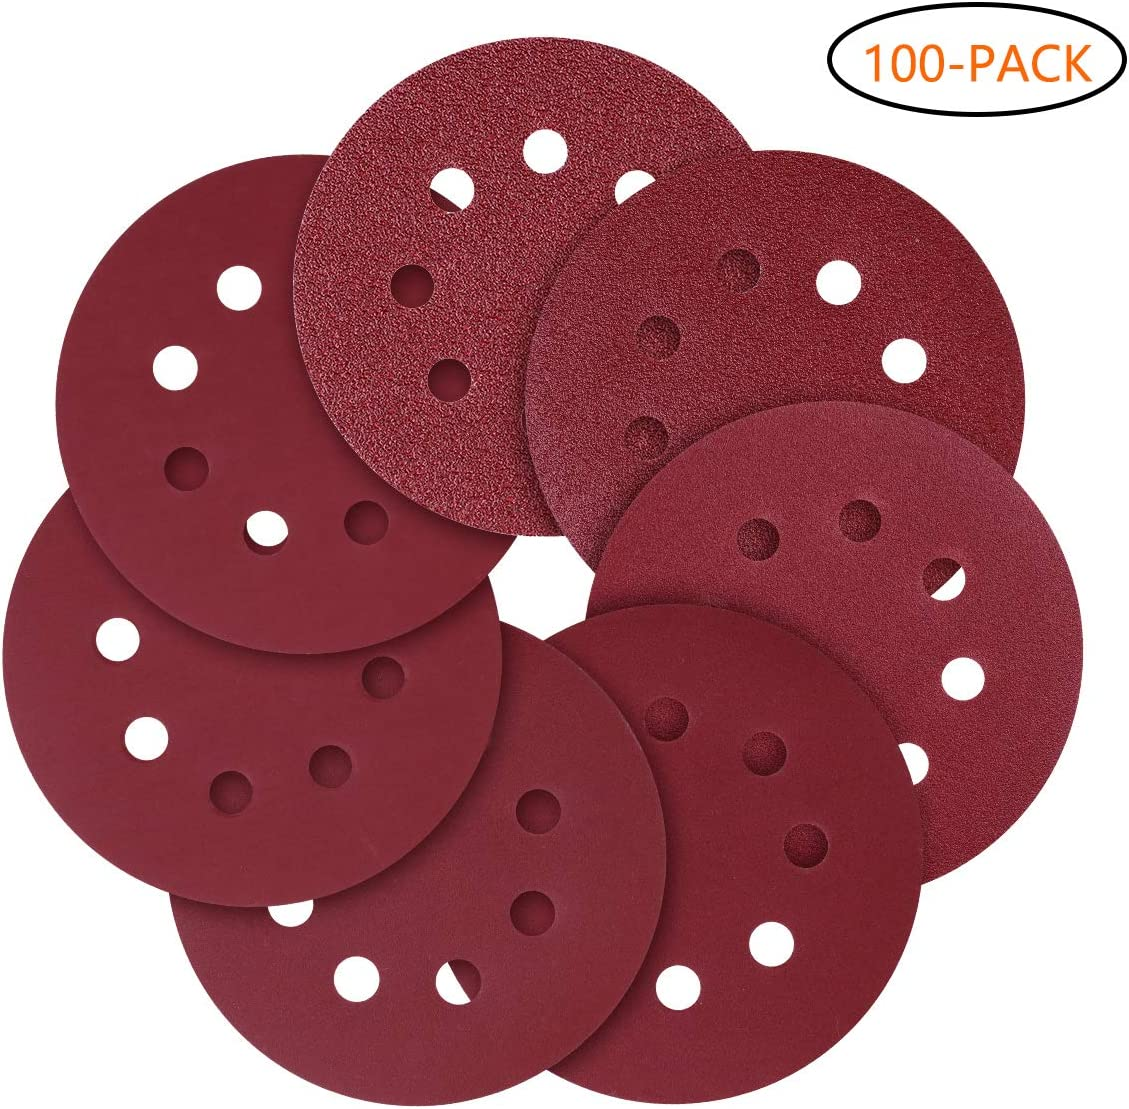 5-Inch 8-Hole Hook and Loop Sanding Discs, 120/240/320/600/800 Assorted Grits Sandpaper - Pack of 100 71czHDNuiIL